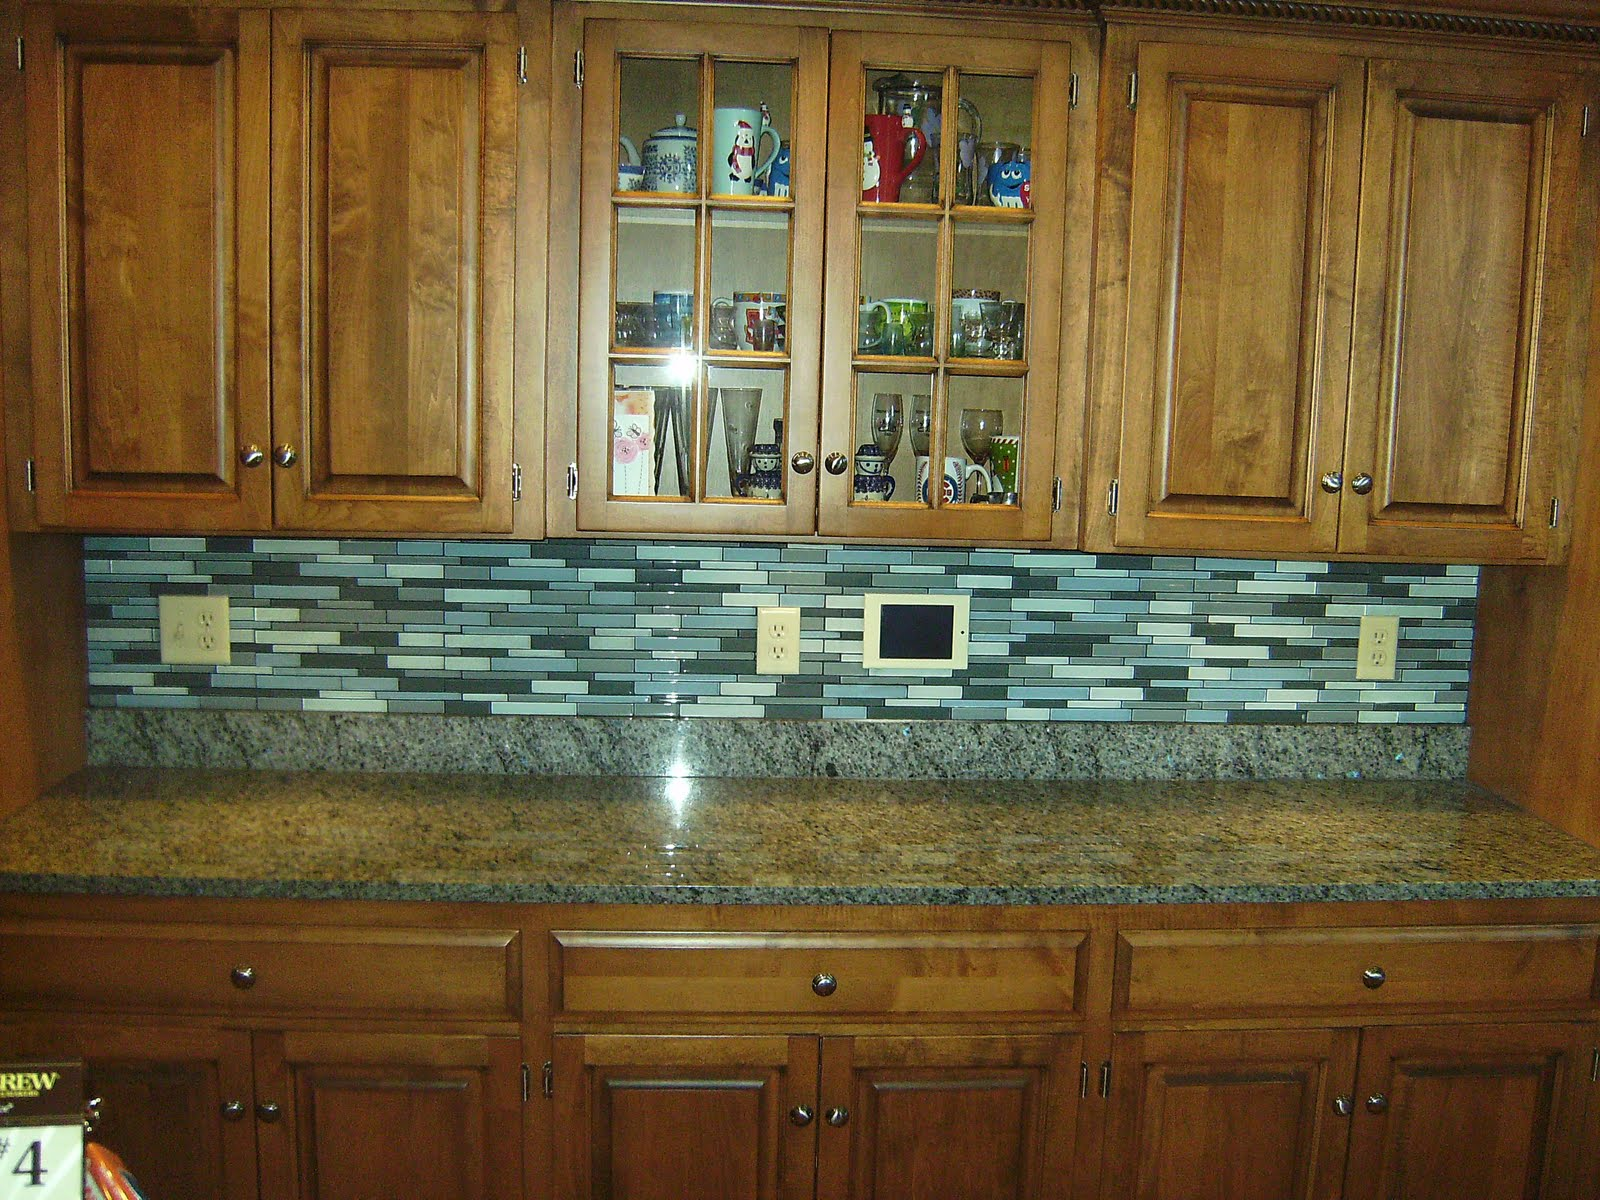 The excellent Designing backsplash designs for kitchen digital photography